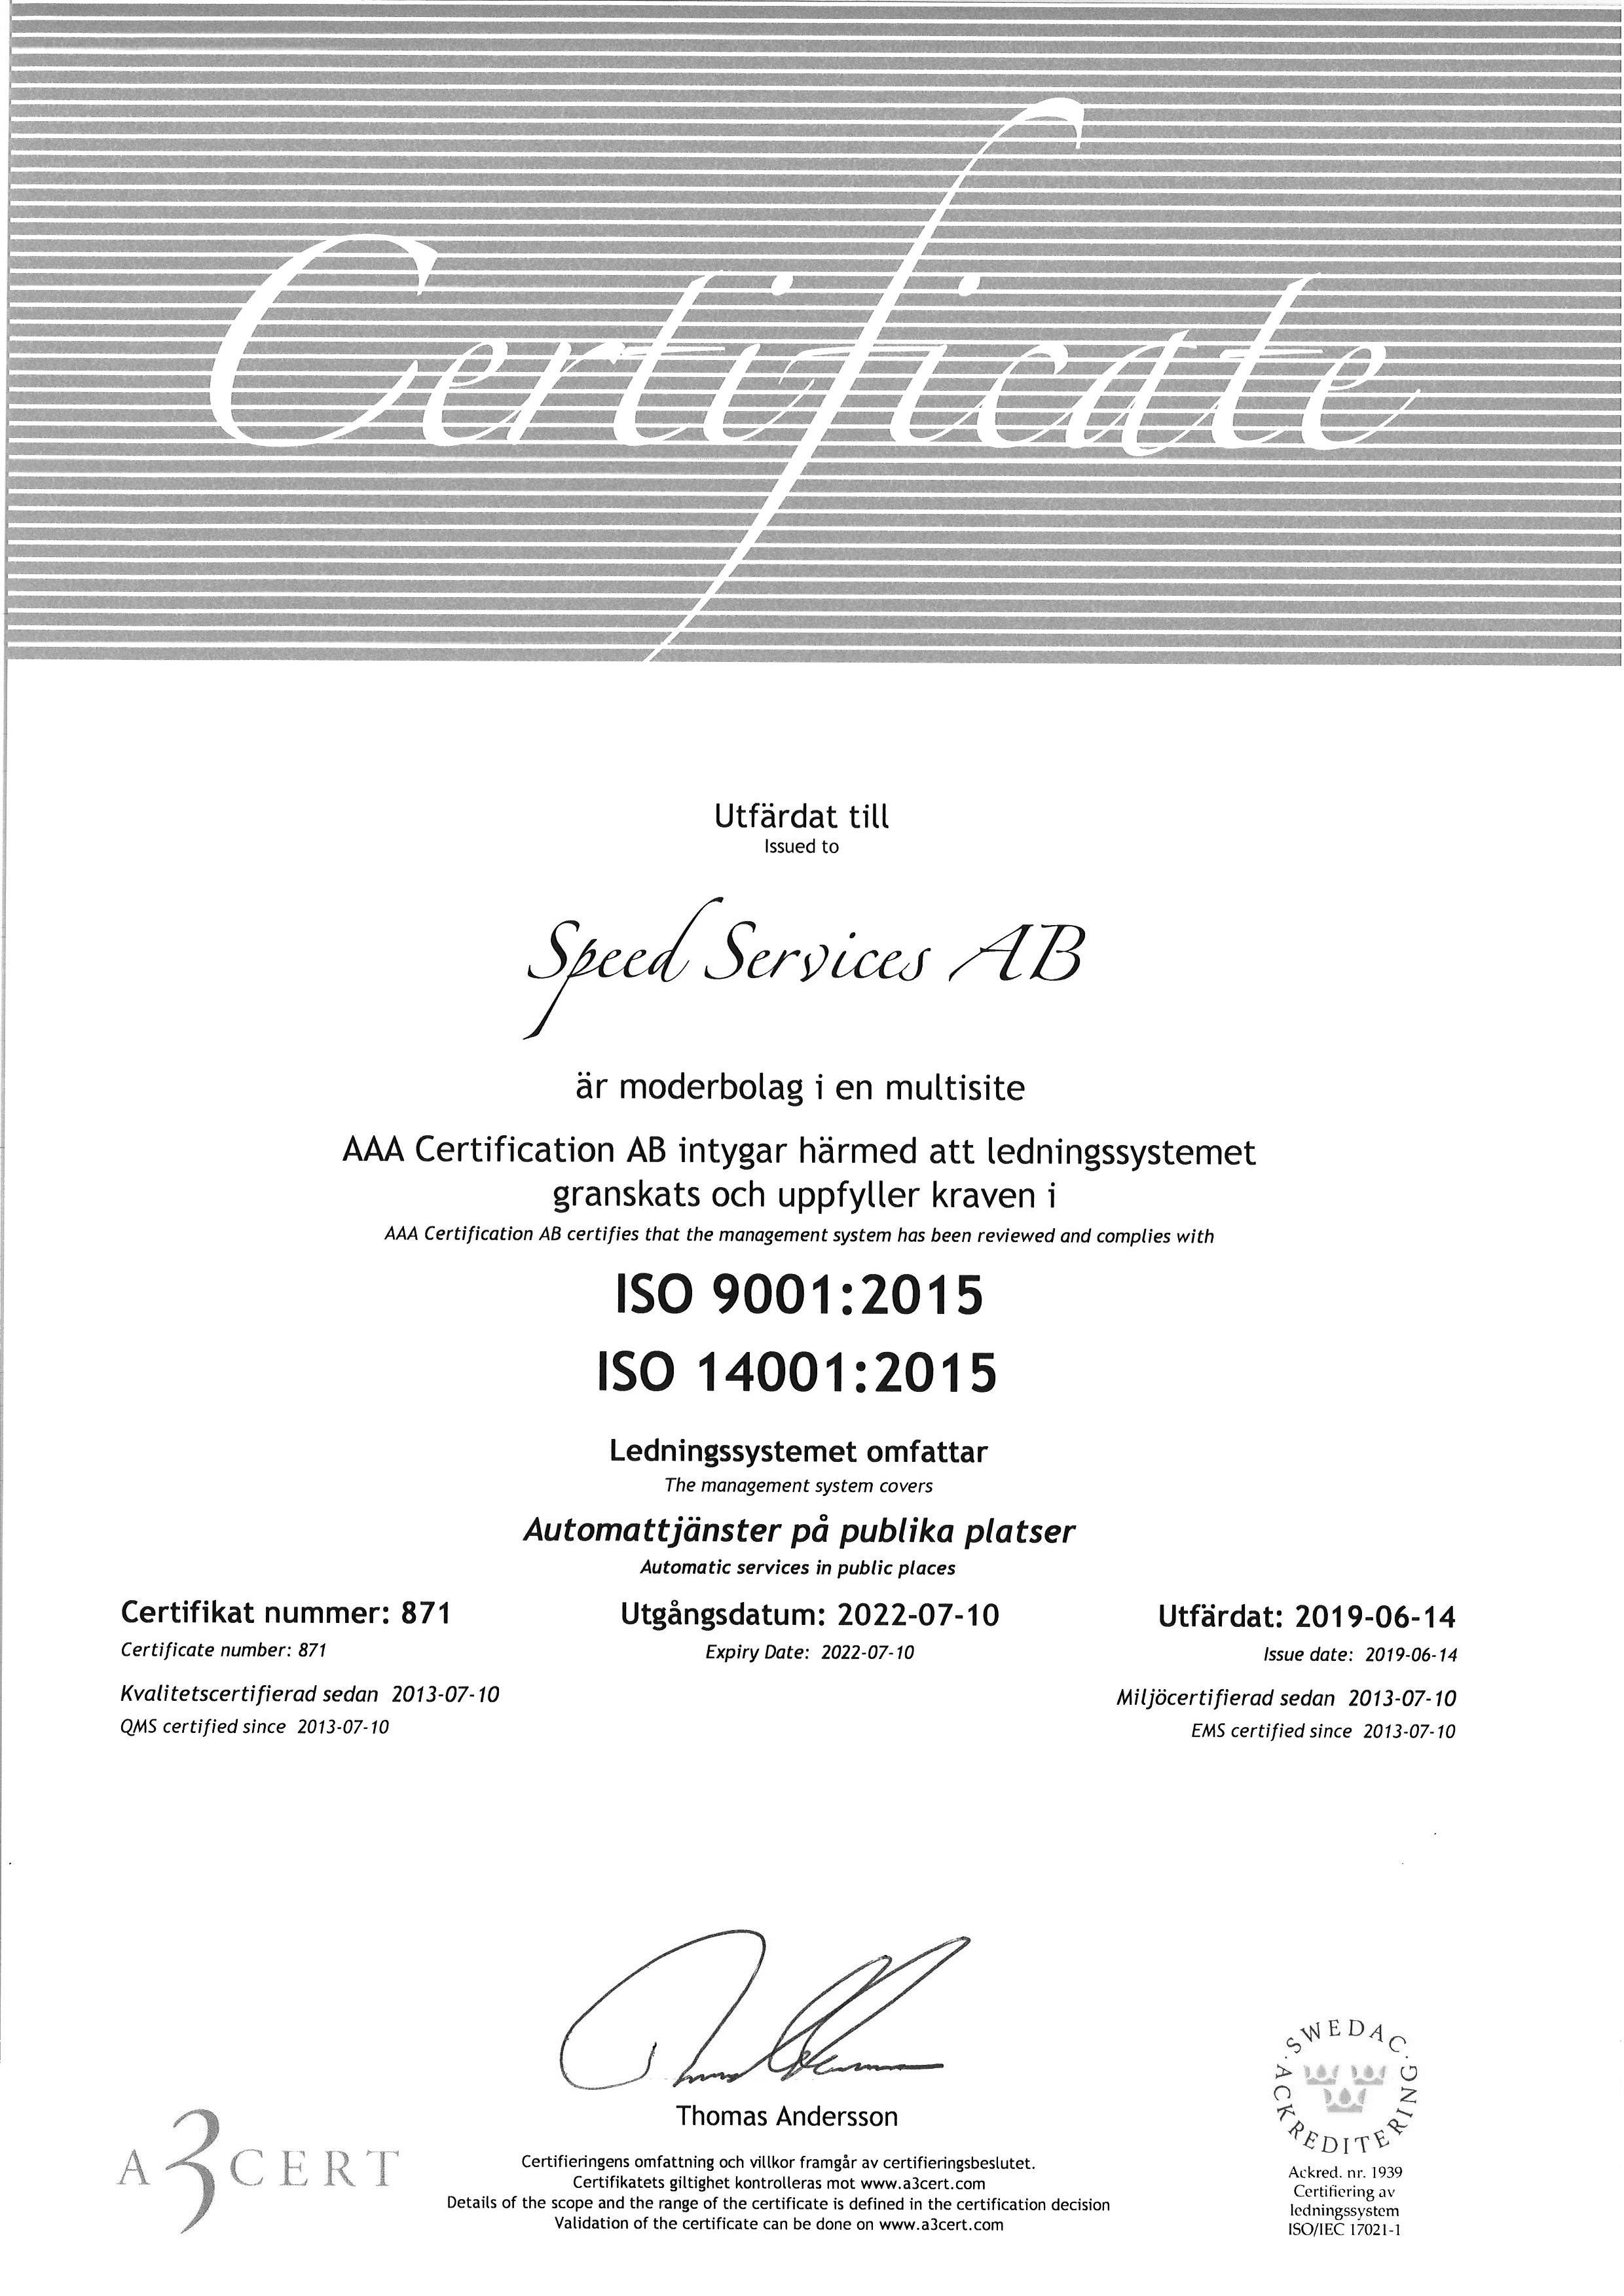 ISO-certifikat Speed Services